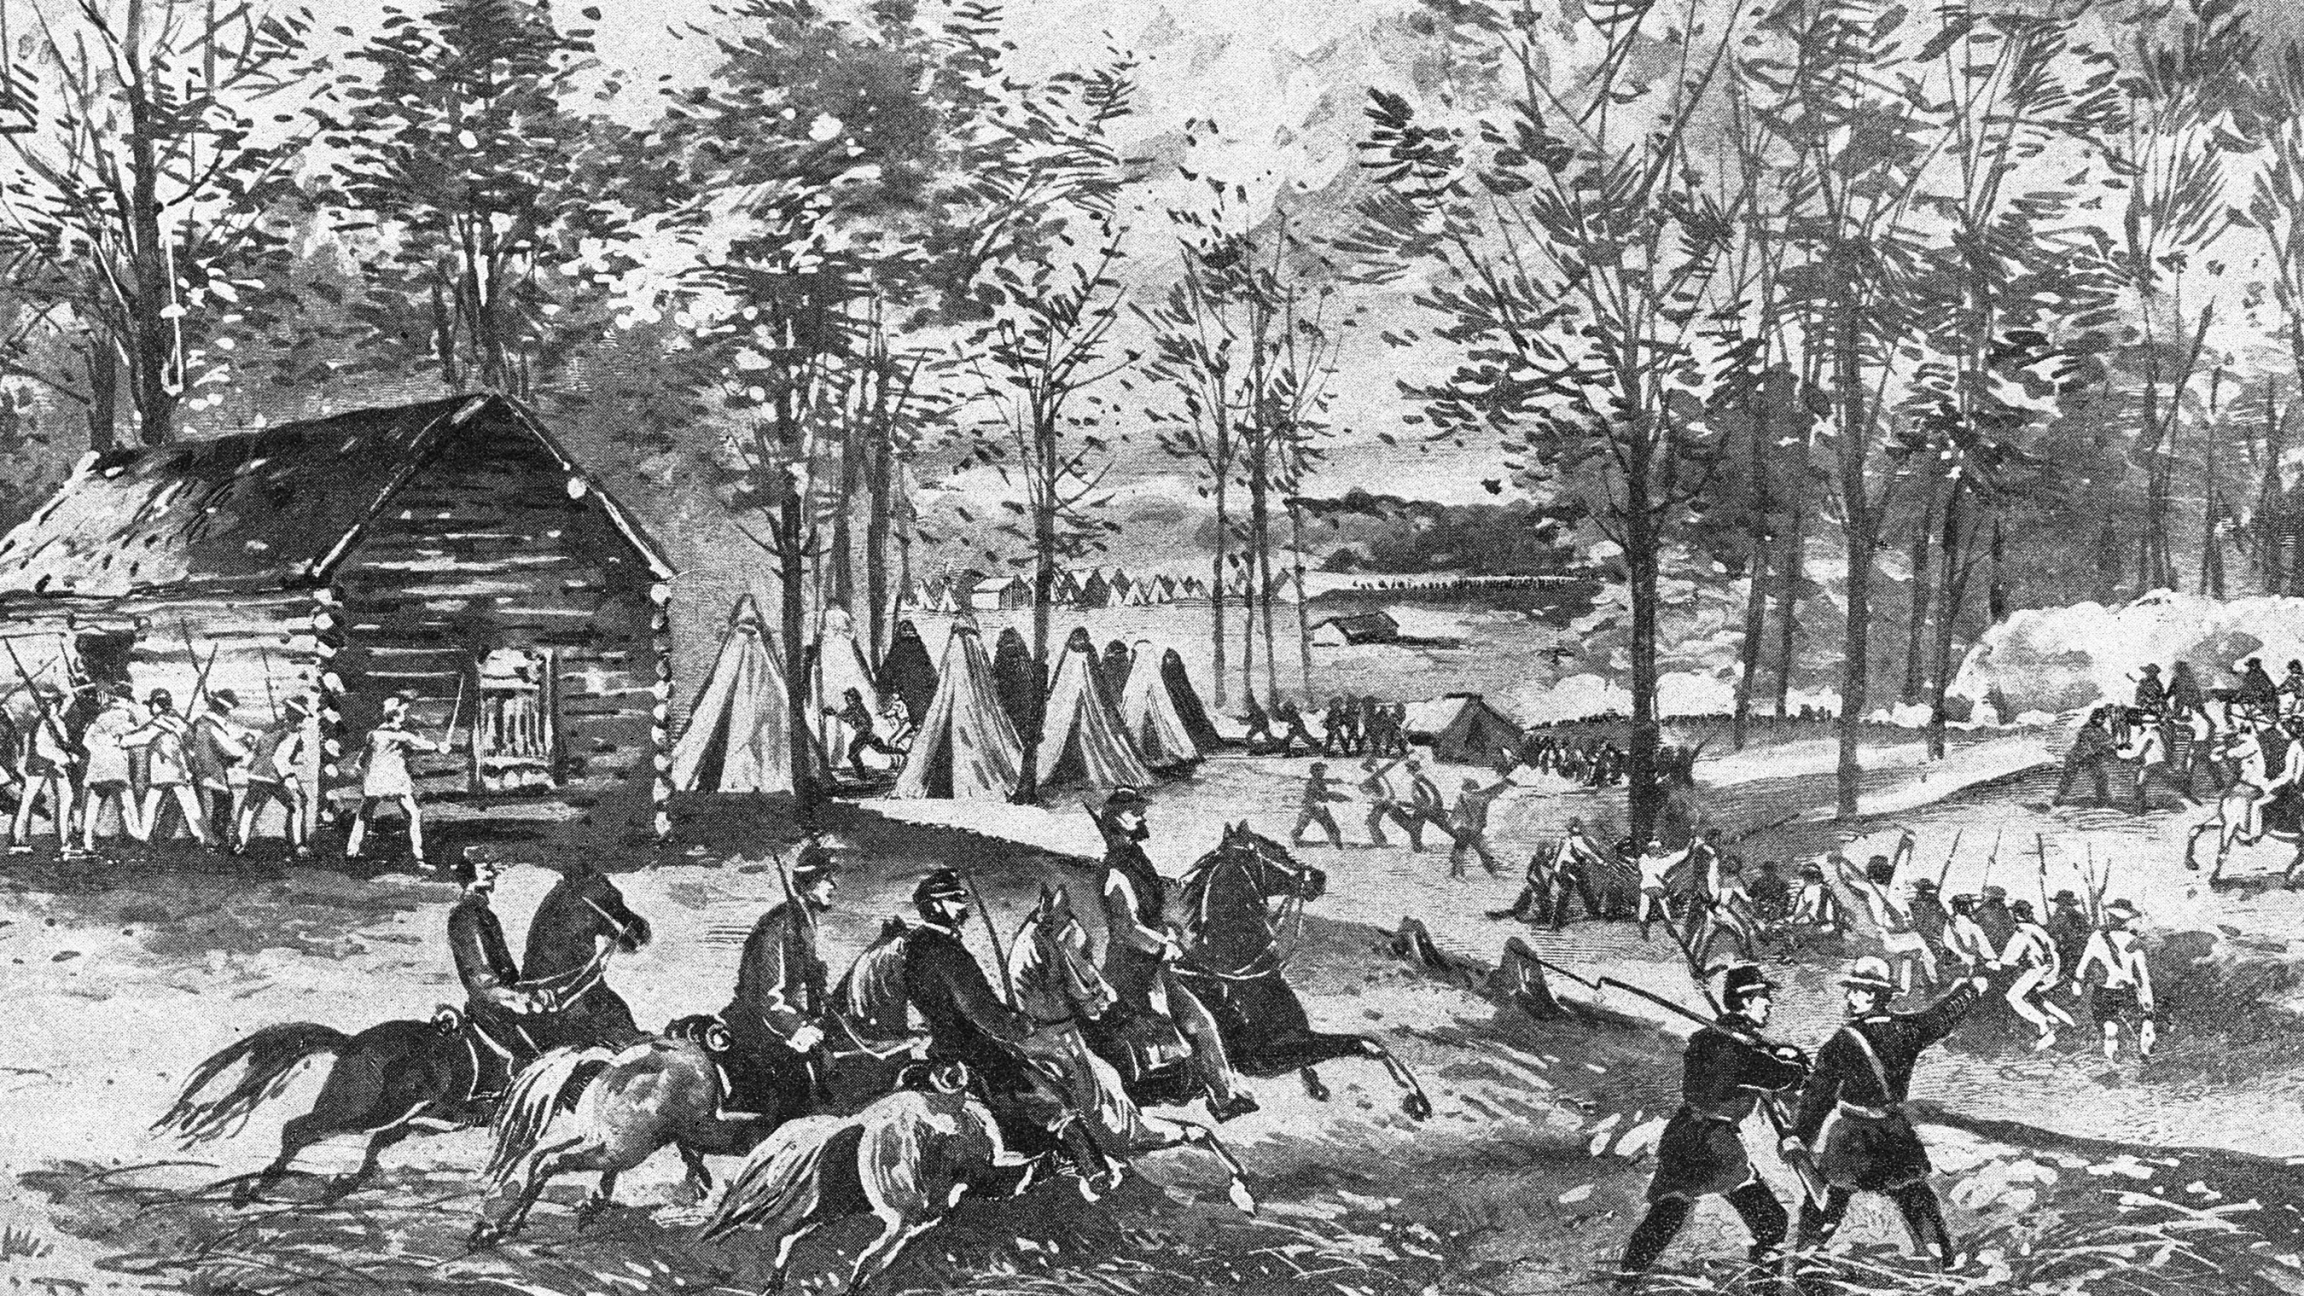 Black and white painting of a civil war scene in Tennessee